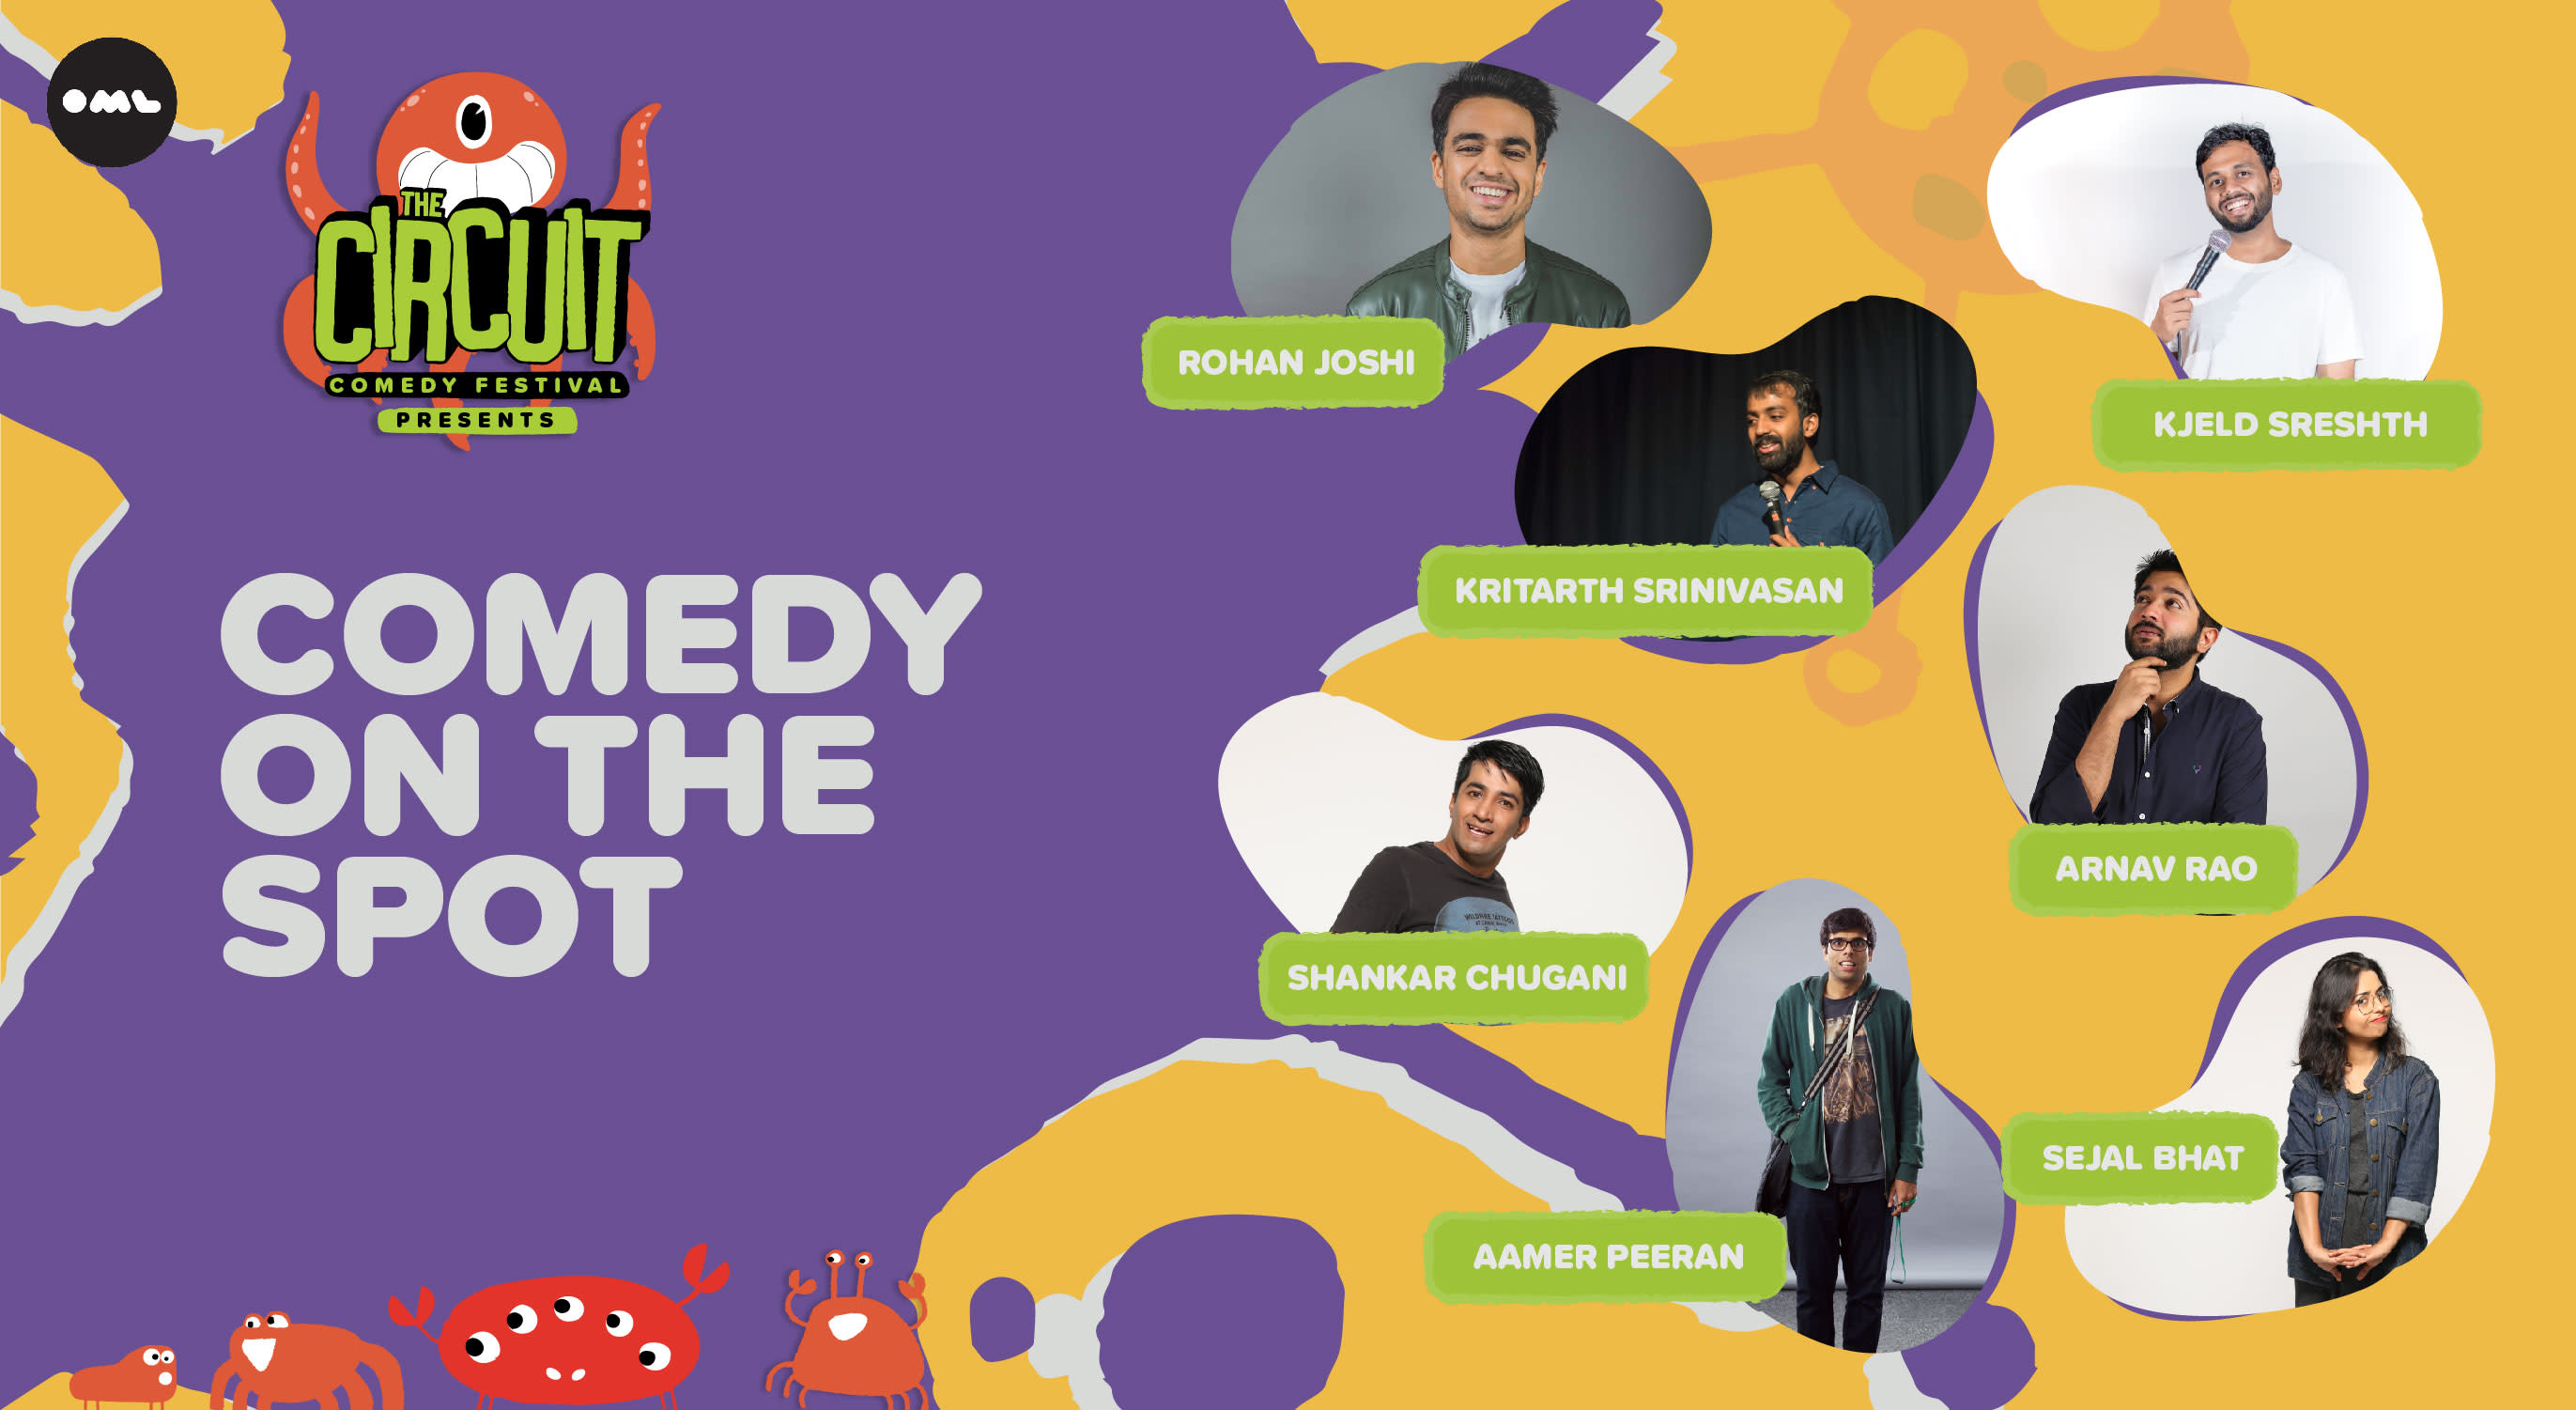 Comedy On the Spot | The Circuit Comedy Festival, Bengaluru